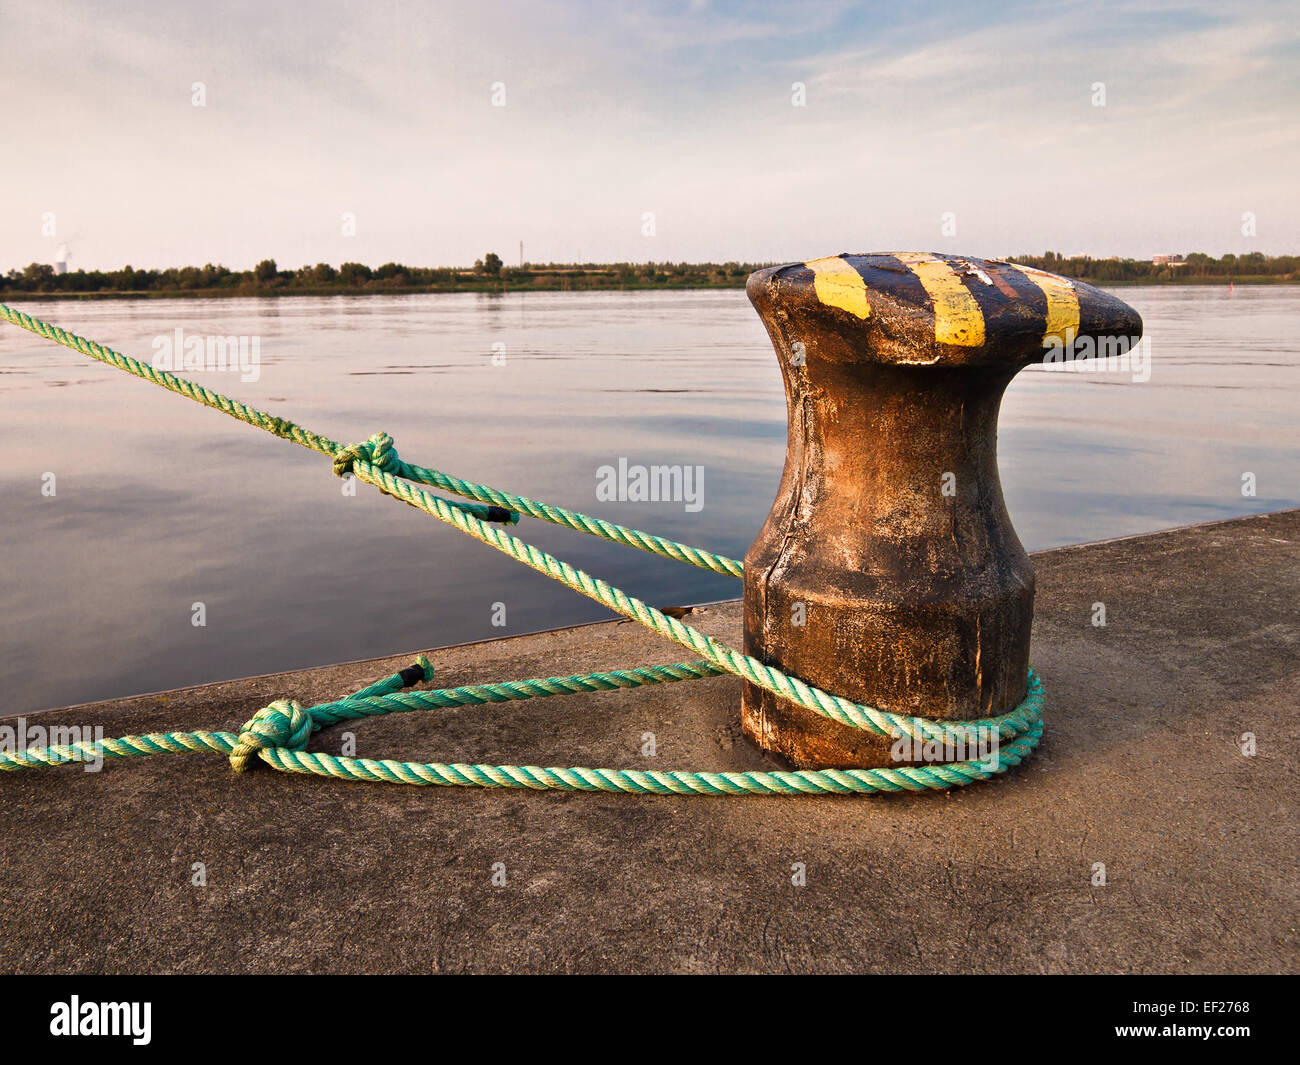 A poller in a port. - Stock Image